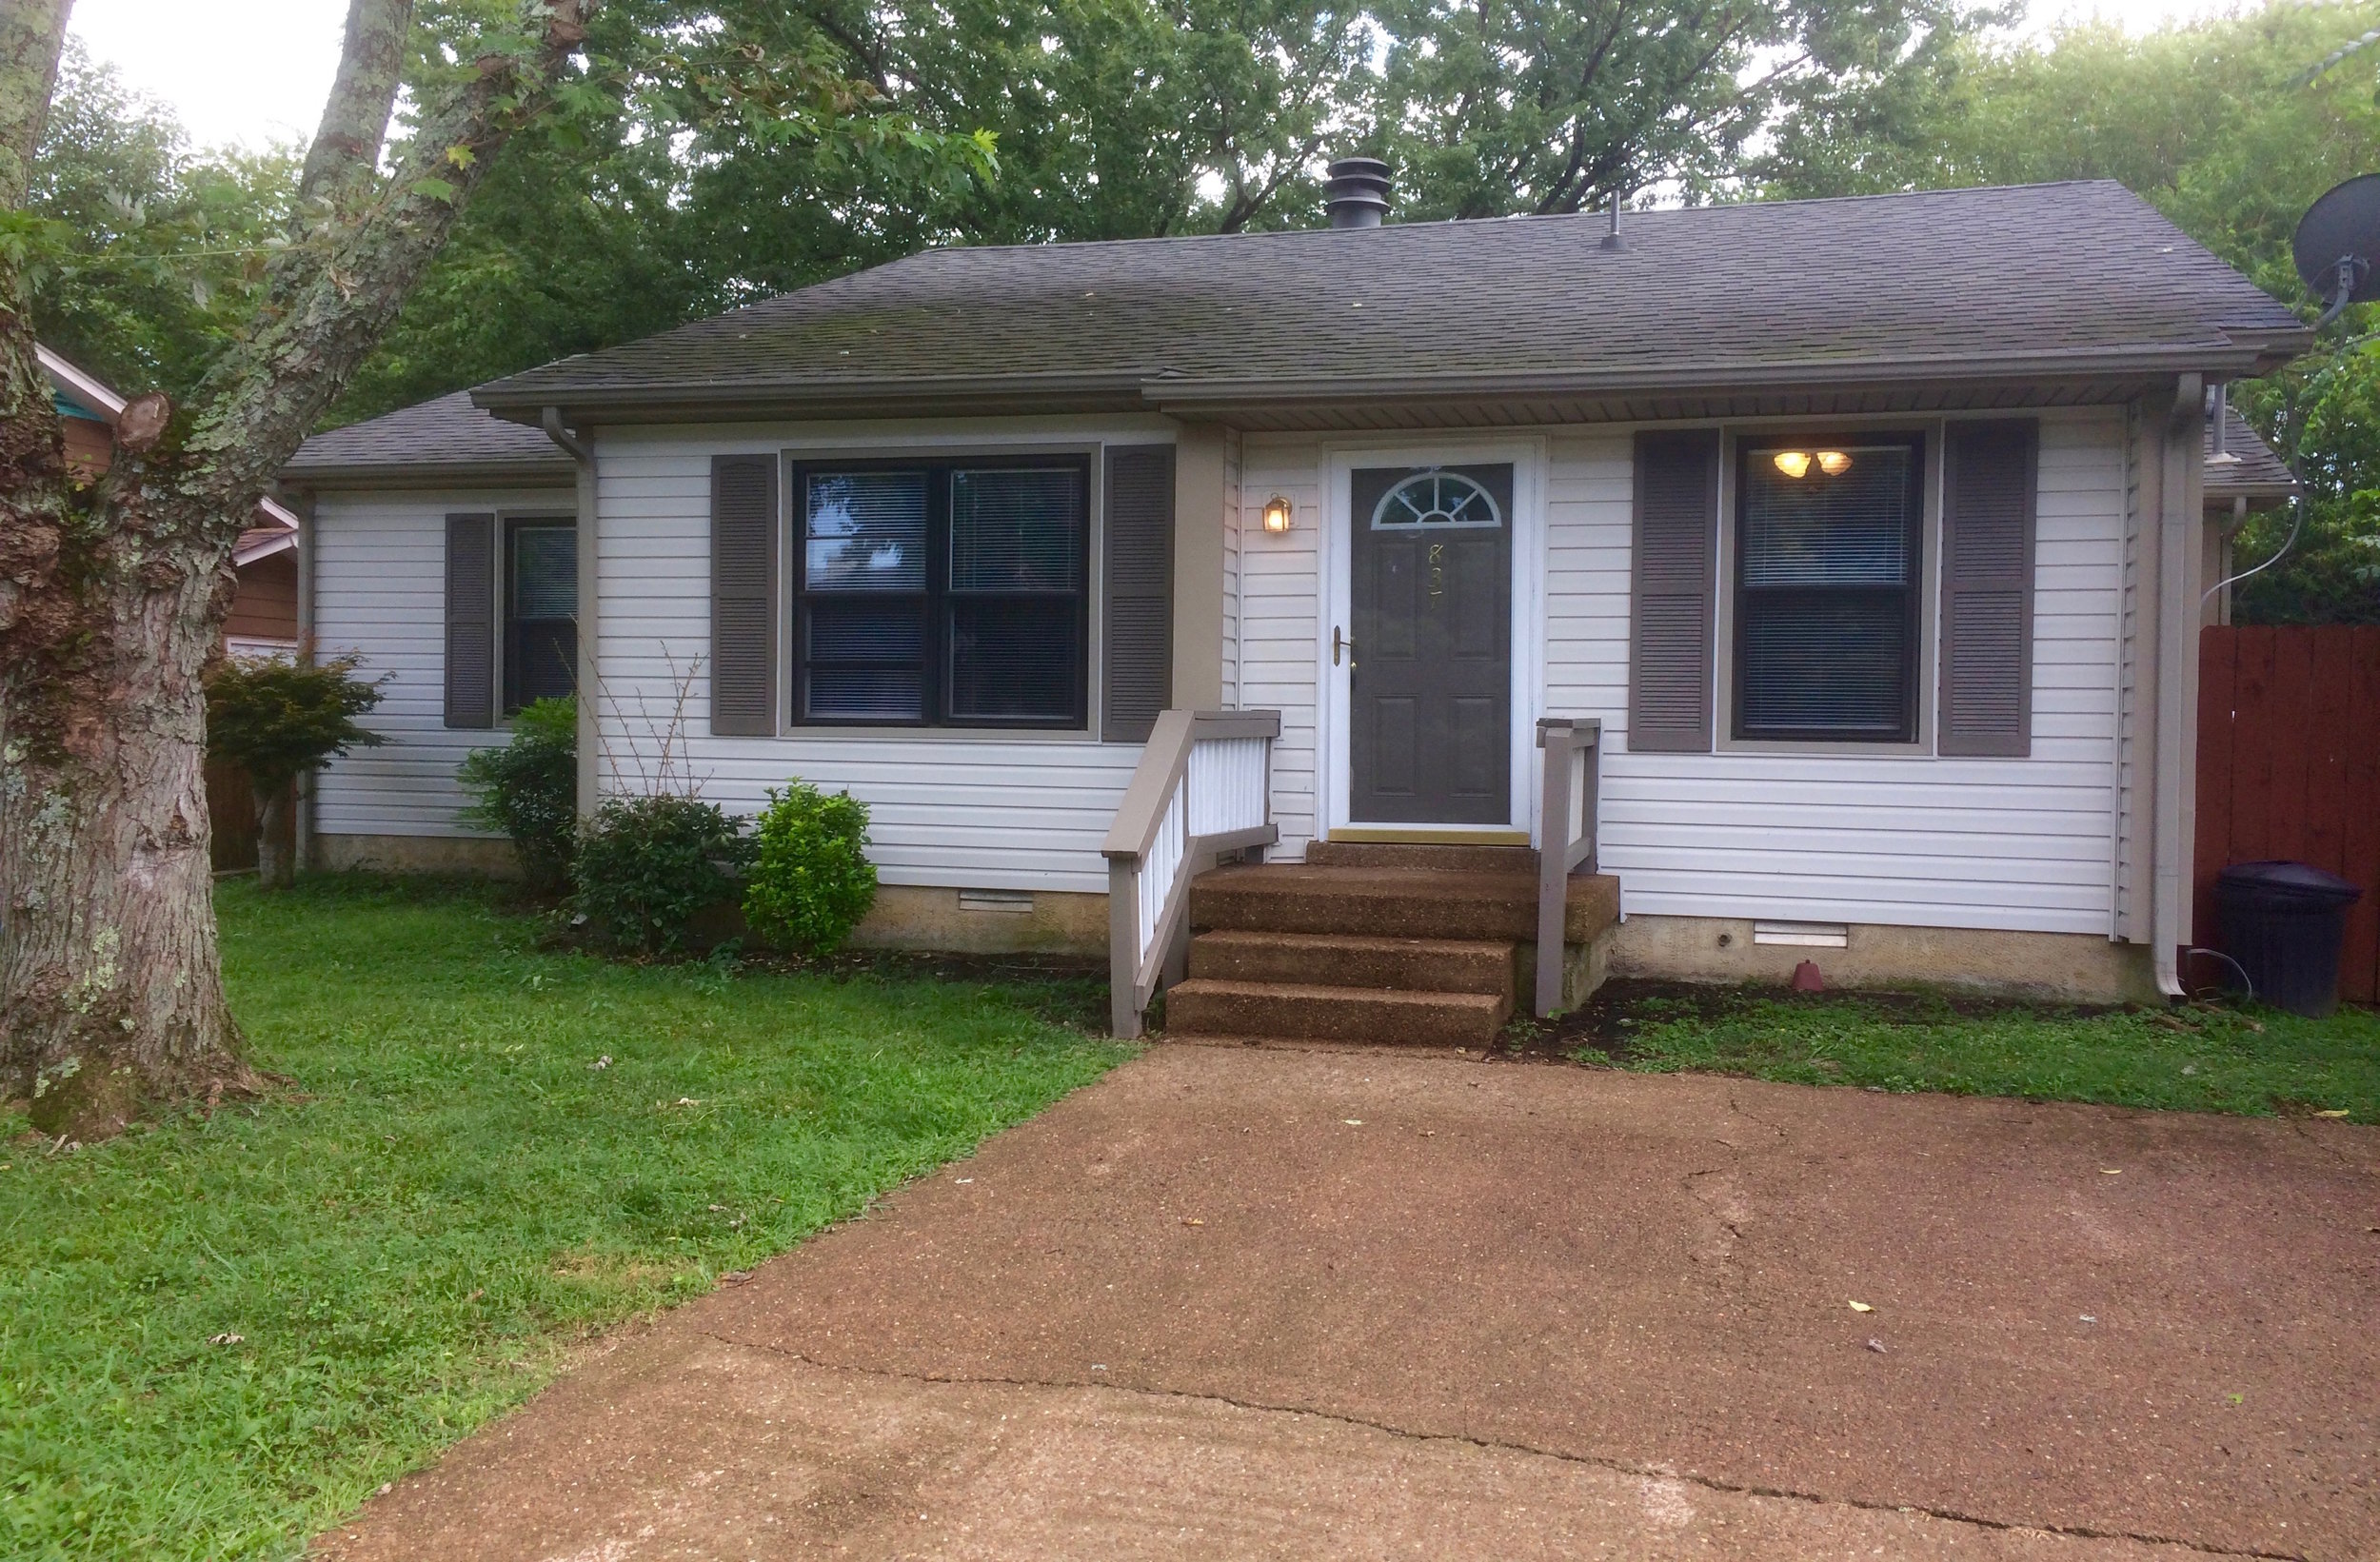 837 RENTED MADISON: 837 Heritage Circle: Home: 3 Br, 1.5 Ba